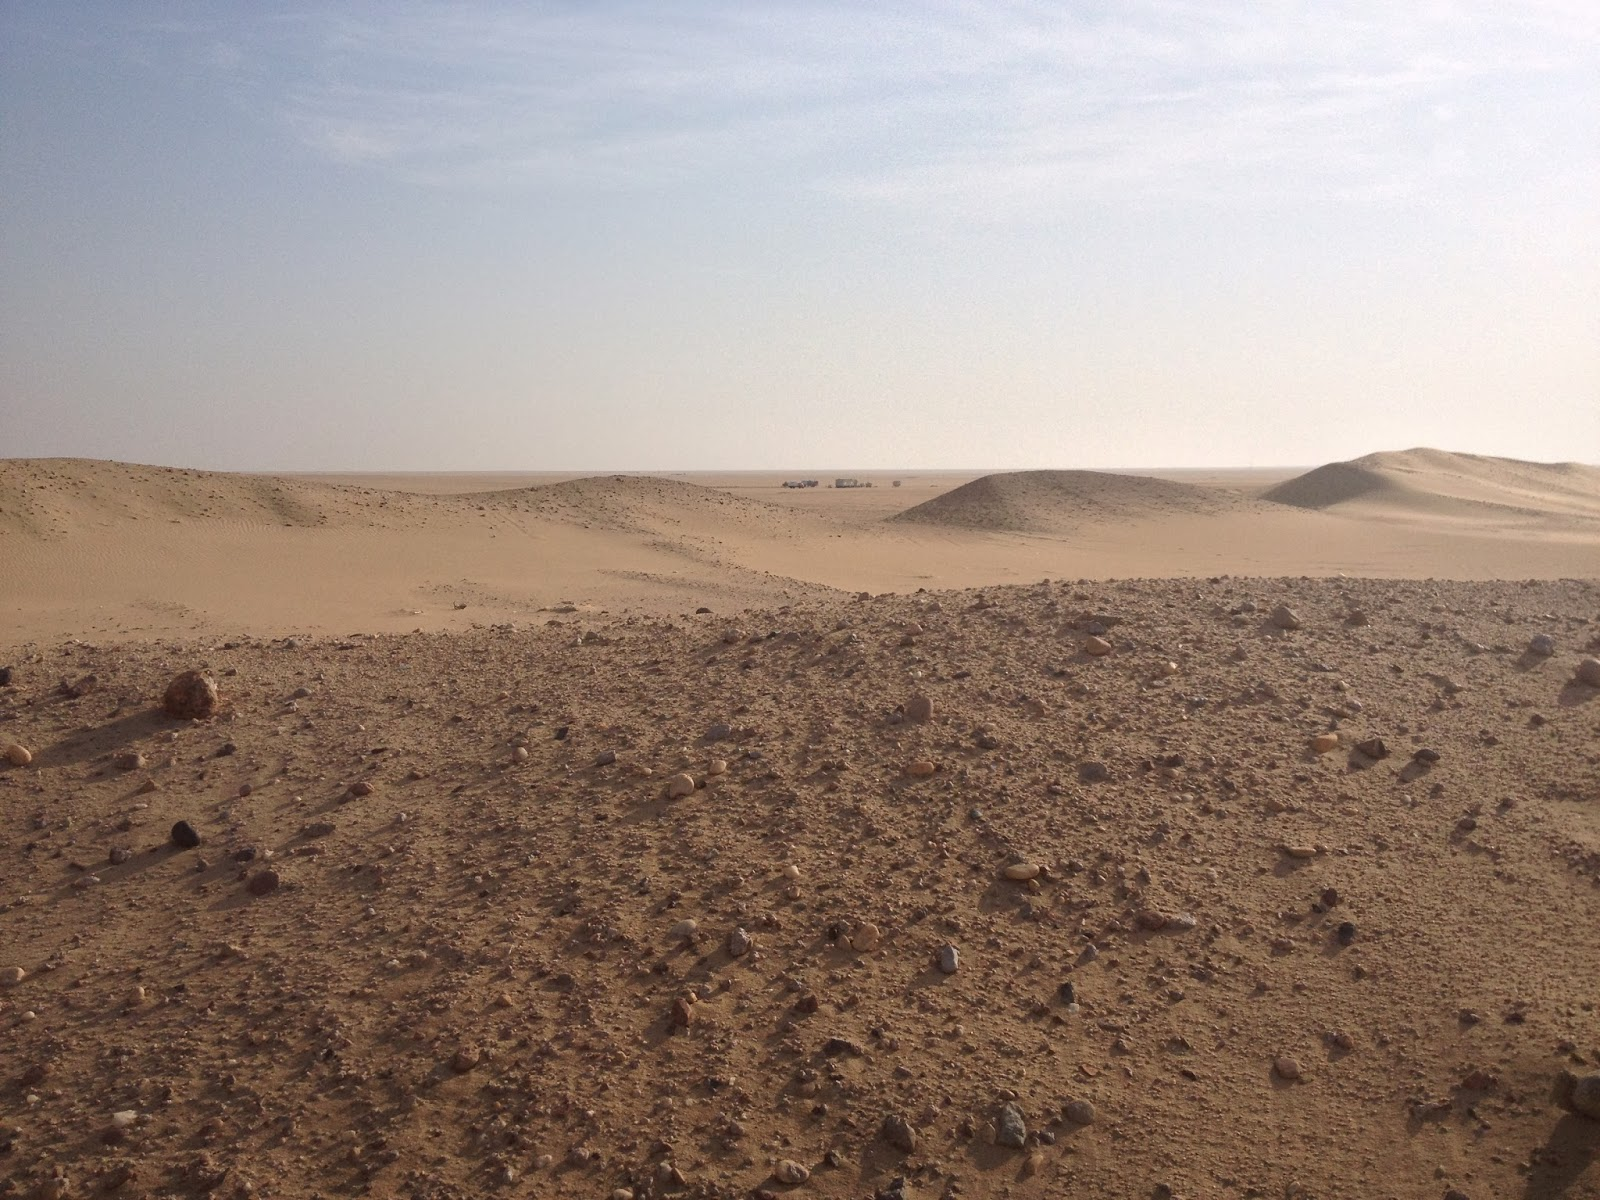 Seconlyly, The Sand Of The Kuwait Desert Isn't Consistently Smooth And  Fine In Many Parts, Its More Like Gravel There Are Plenty Of Stones And  Even Large